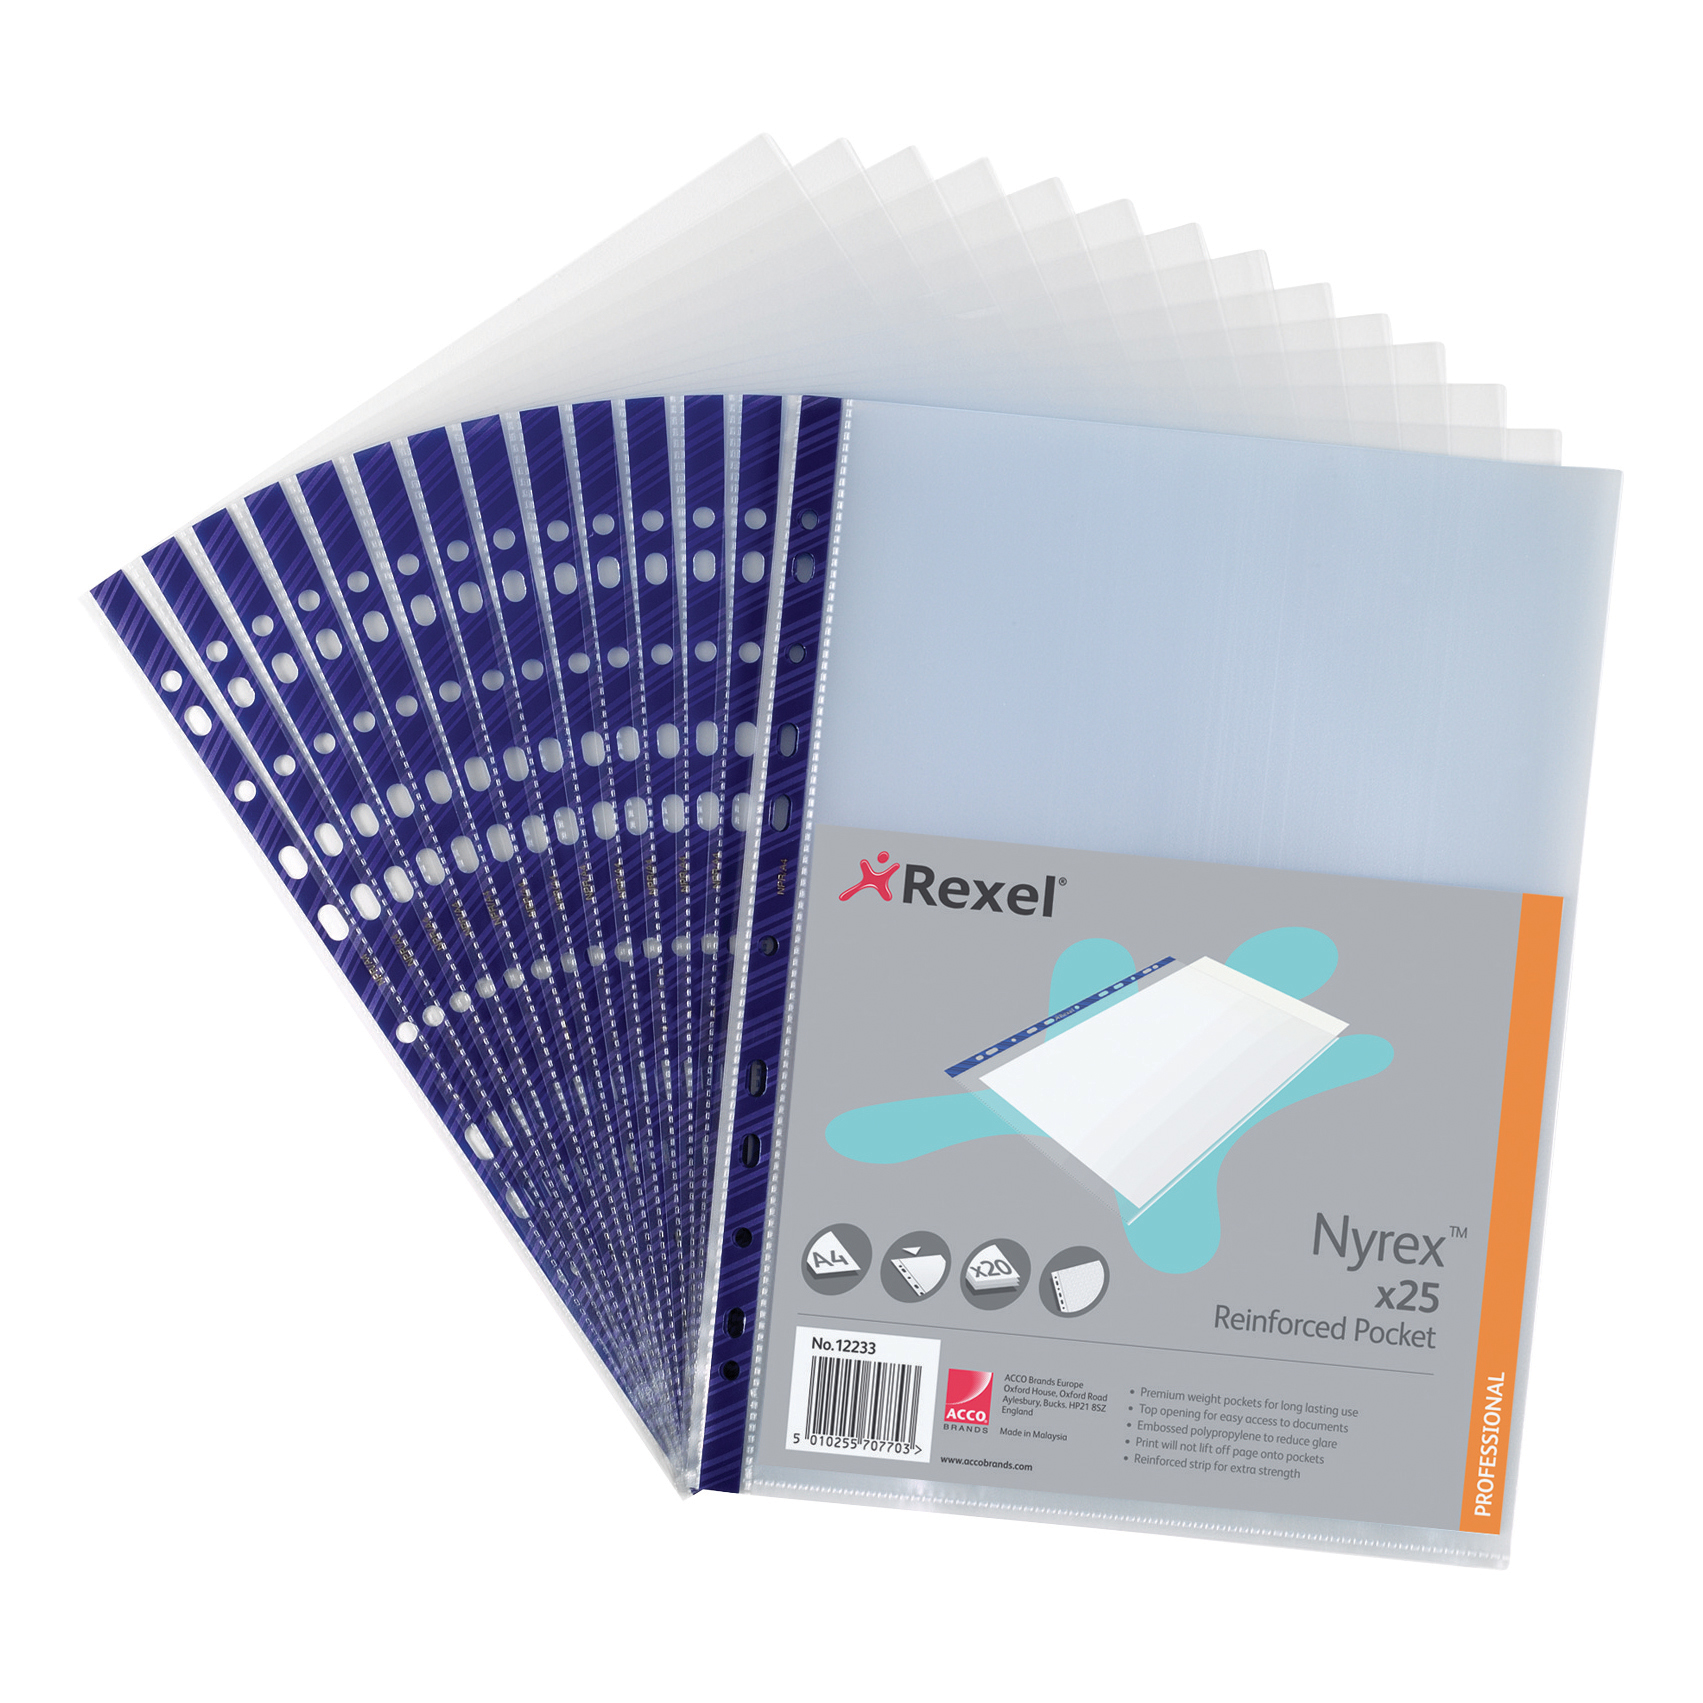 Rexel Nyrex Pocket Reinforced Blue Strip Top-opening 90 Micron A4 Clear Ref 12233 [Pack of 25]